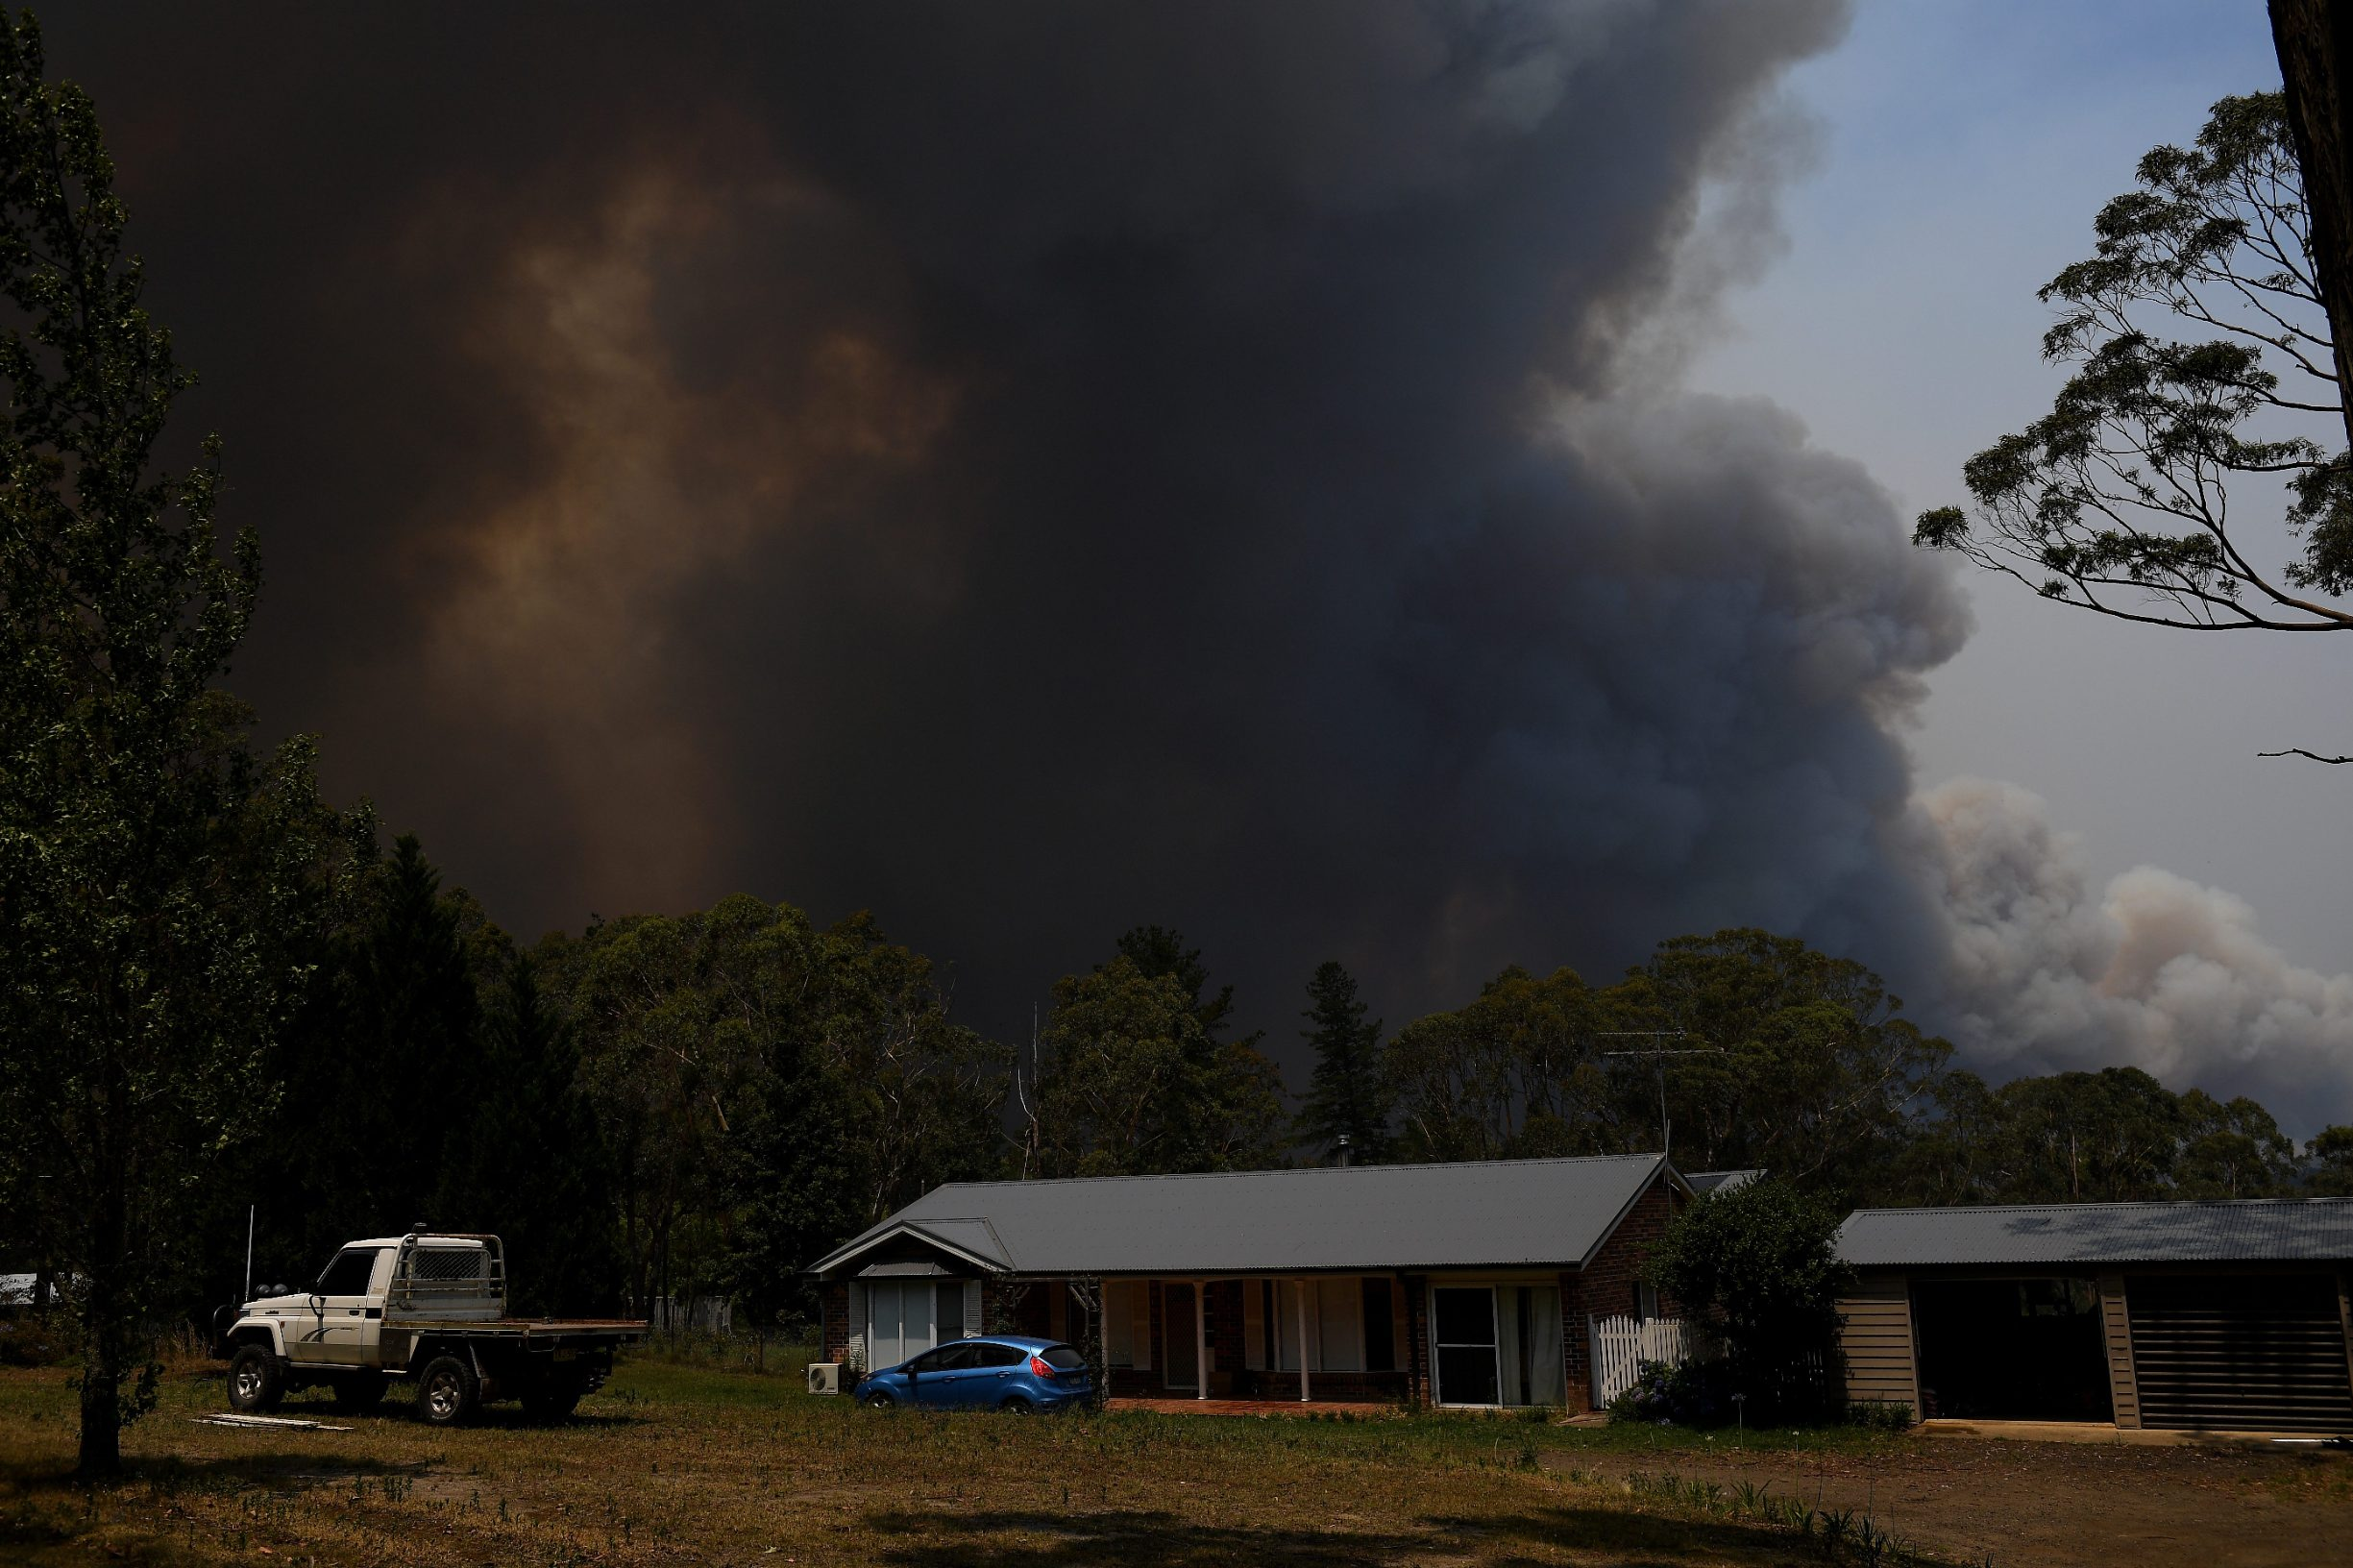 A home is seen as smoke from the Grose Valley Fire rises in the distance, at Bilpin, Saturday, December 21, 2019. Conditions are expected to worsen across much of NSW as temperatures tip 40C. (AAP Image/Dan Himbrechts) NO ARCHIVING    AAP/via REUTERS    ATTENTION EDITORS - THIS IMAGE WAS PROVIDED BY A THIRD PARTY. NO RESALES. NO ARCHIVE. AUSTRALIA OUT. NEW ZEALAND OUT. NO COMMERCIAL OR EDITORIAL SALES IN NEW ZEALAND. NO COMMERCIAL OR EDITORIAL SALES IN AUSTRALIA.